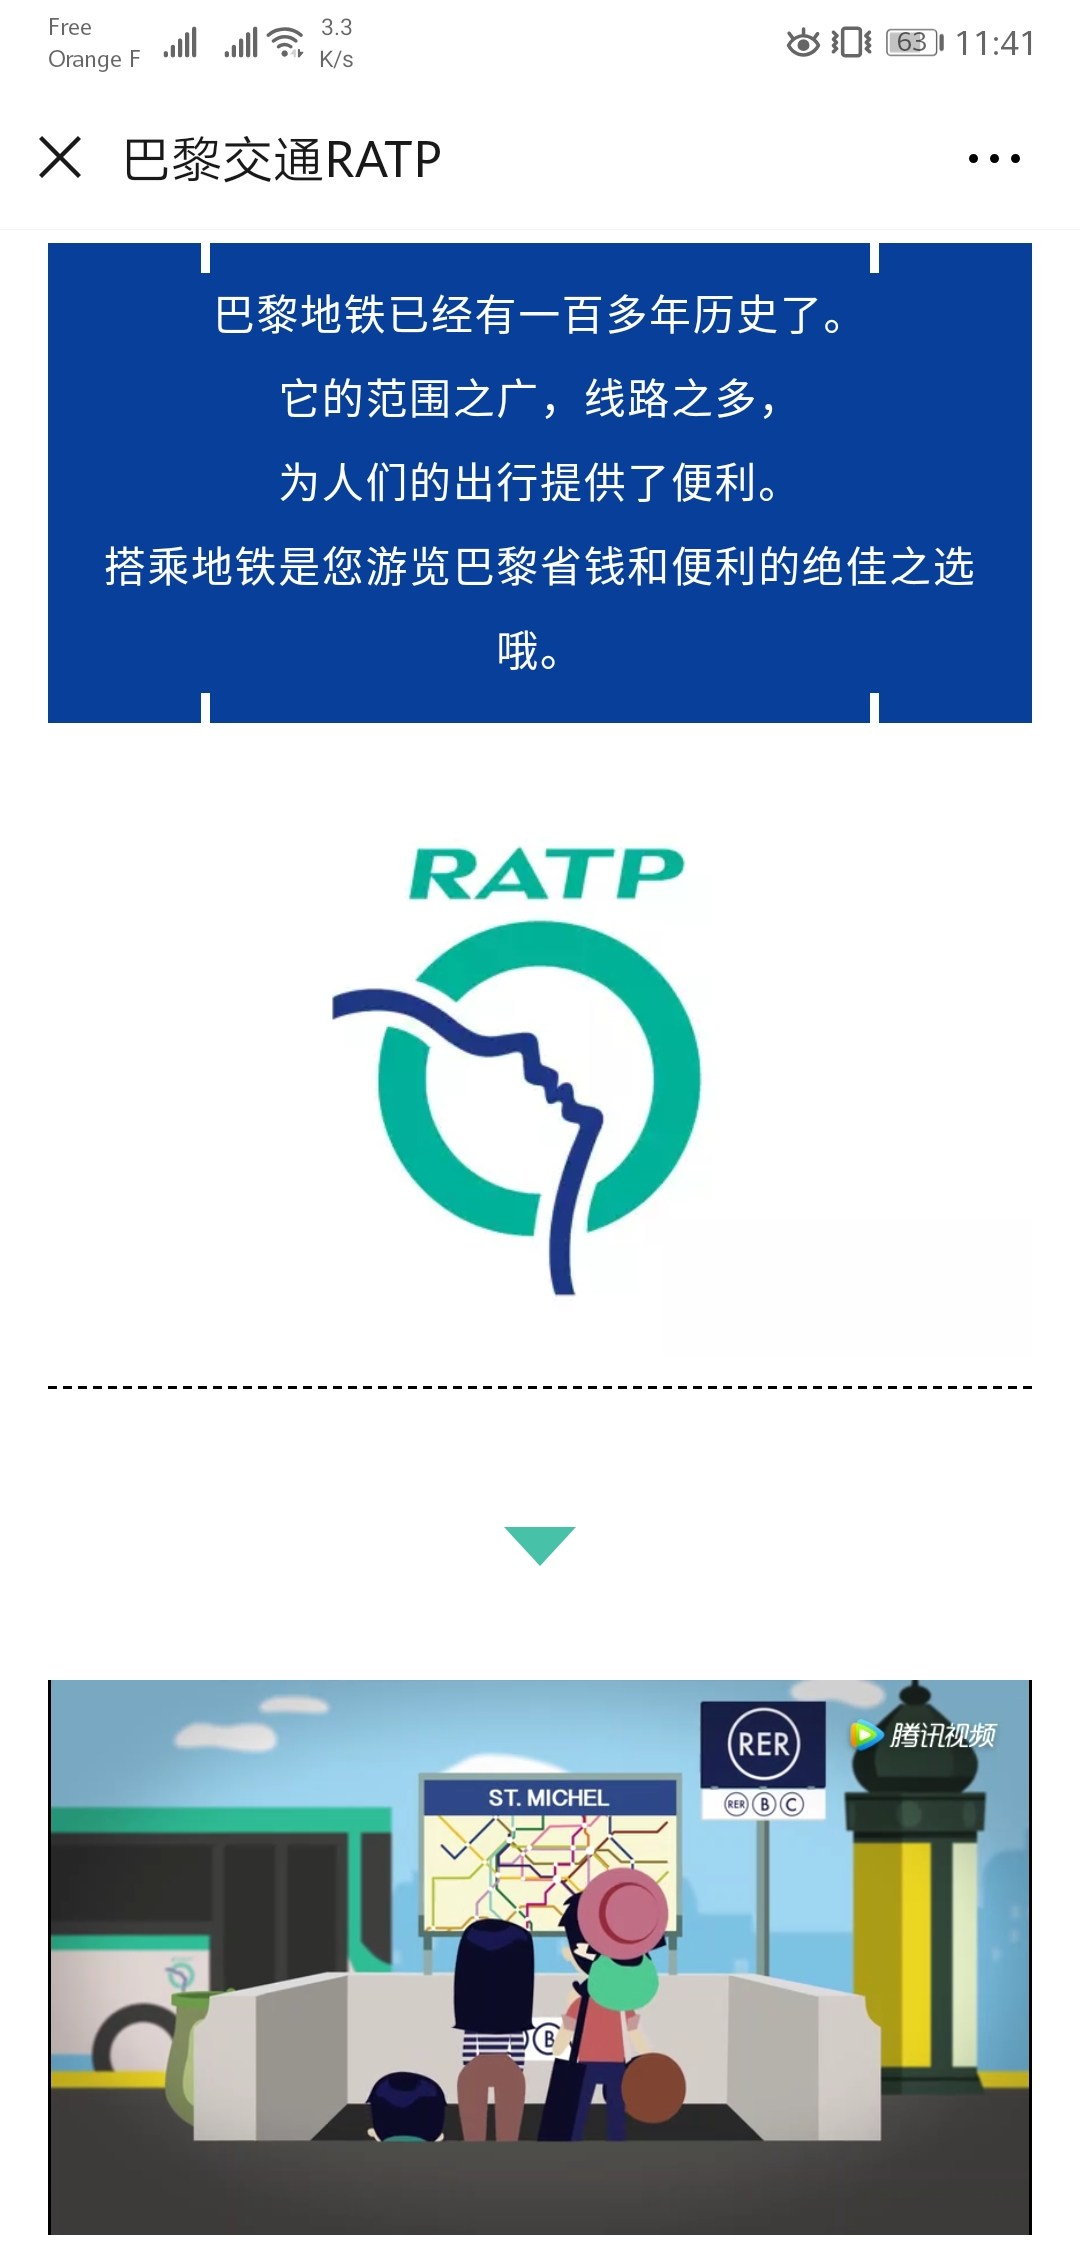 RATP Wechat official account